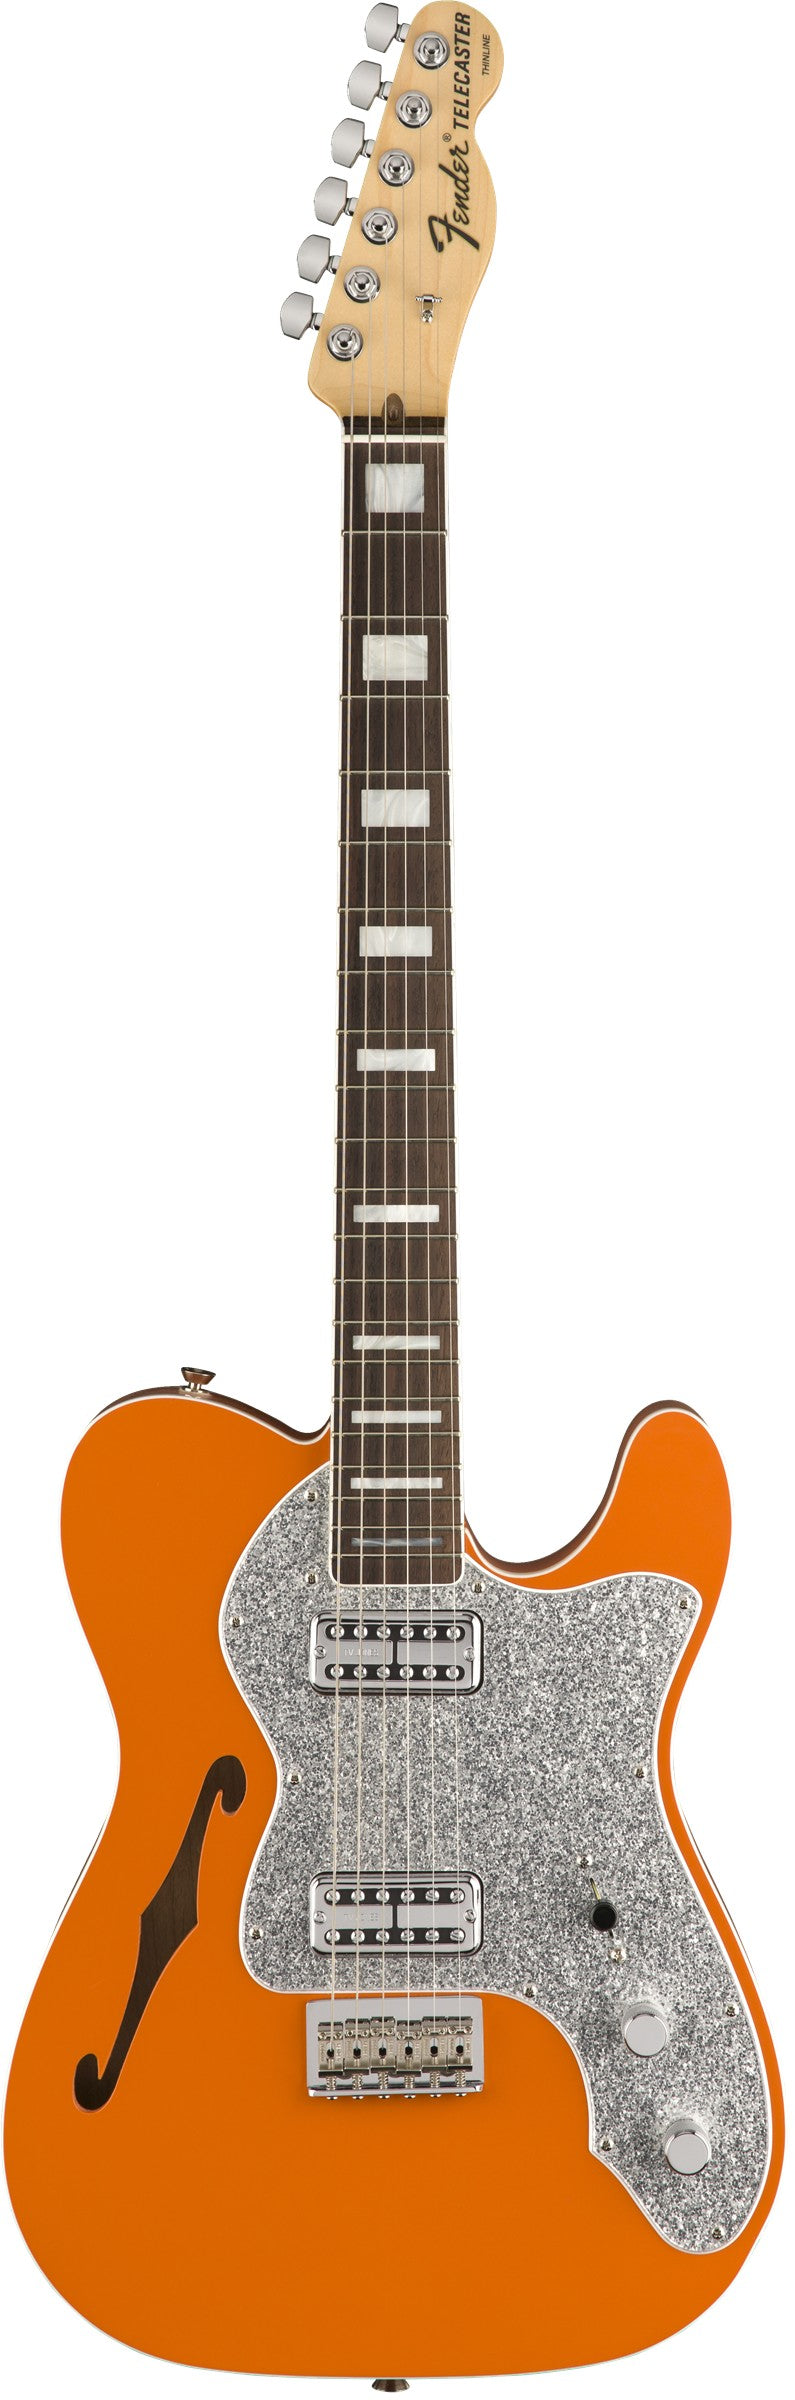 Fender 2018 Limited Edition Tele Thinline Super Deluxe - Rosewood Fingerboard, Orange